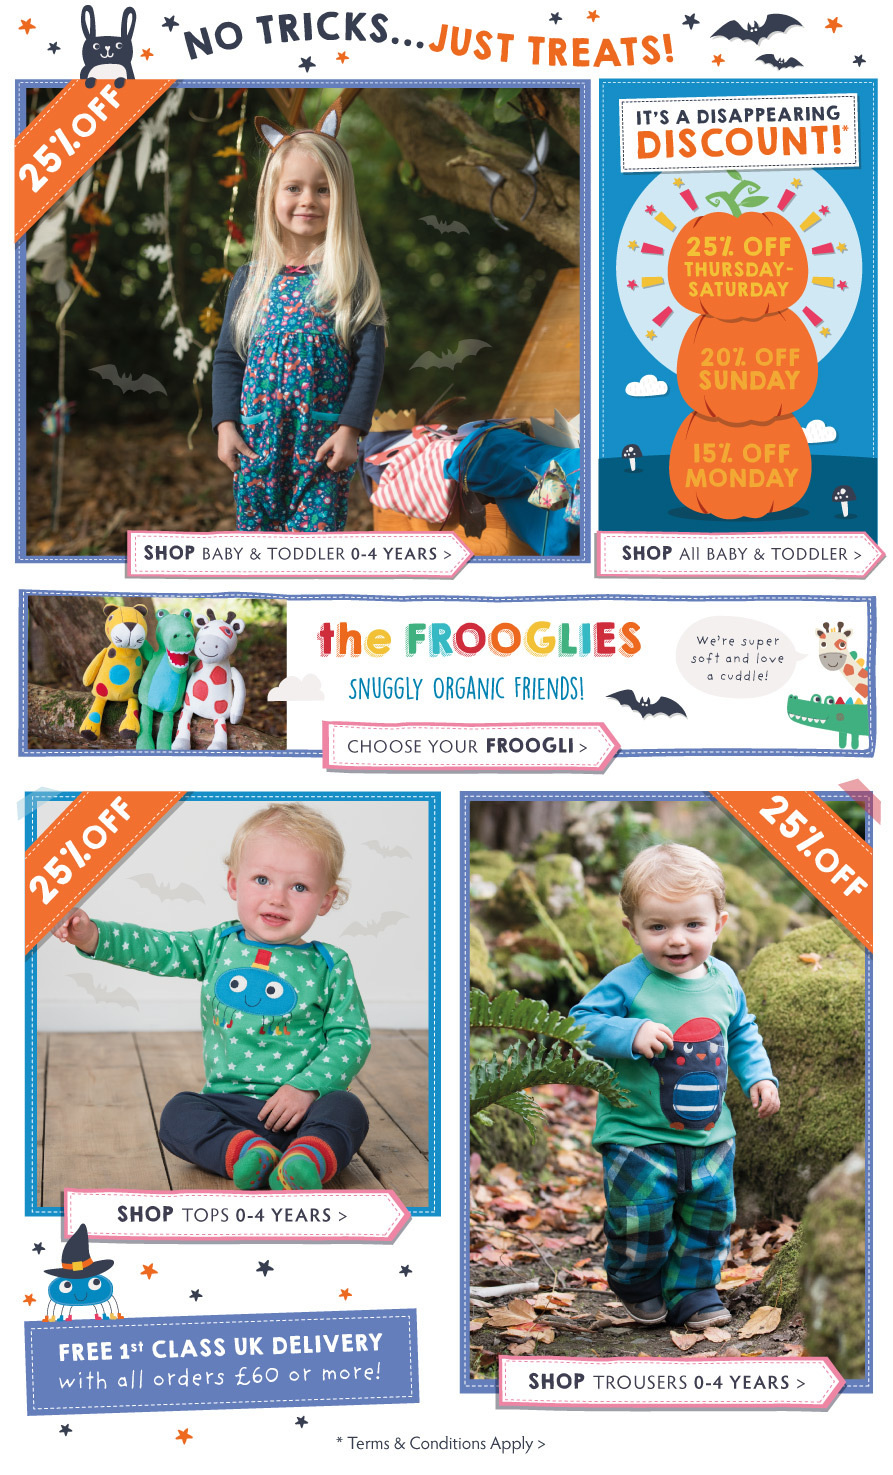 Baby & Toddler - Disappearing Discount